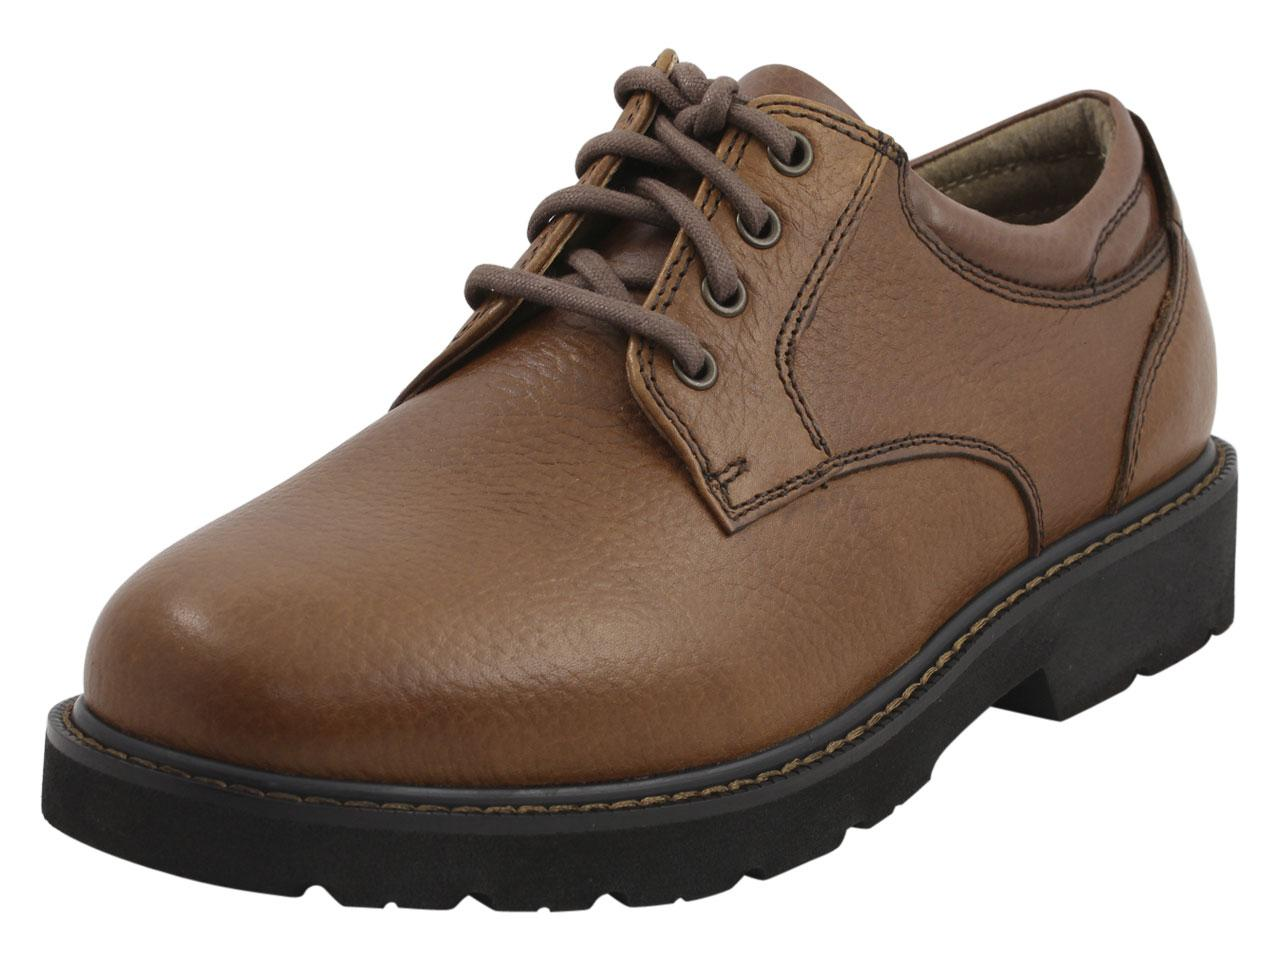 Image of Dockers Men's Shelter Water Repellent Oxfords Shoes - Brown - 9 D(M) US